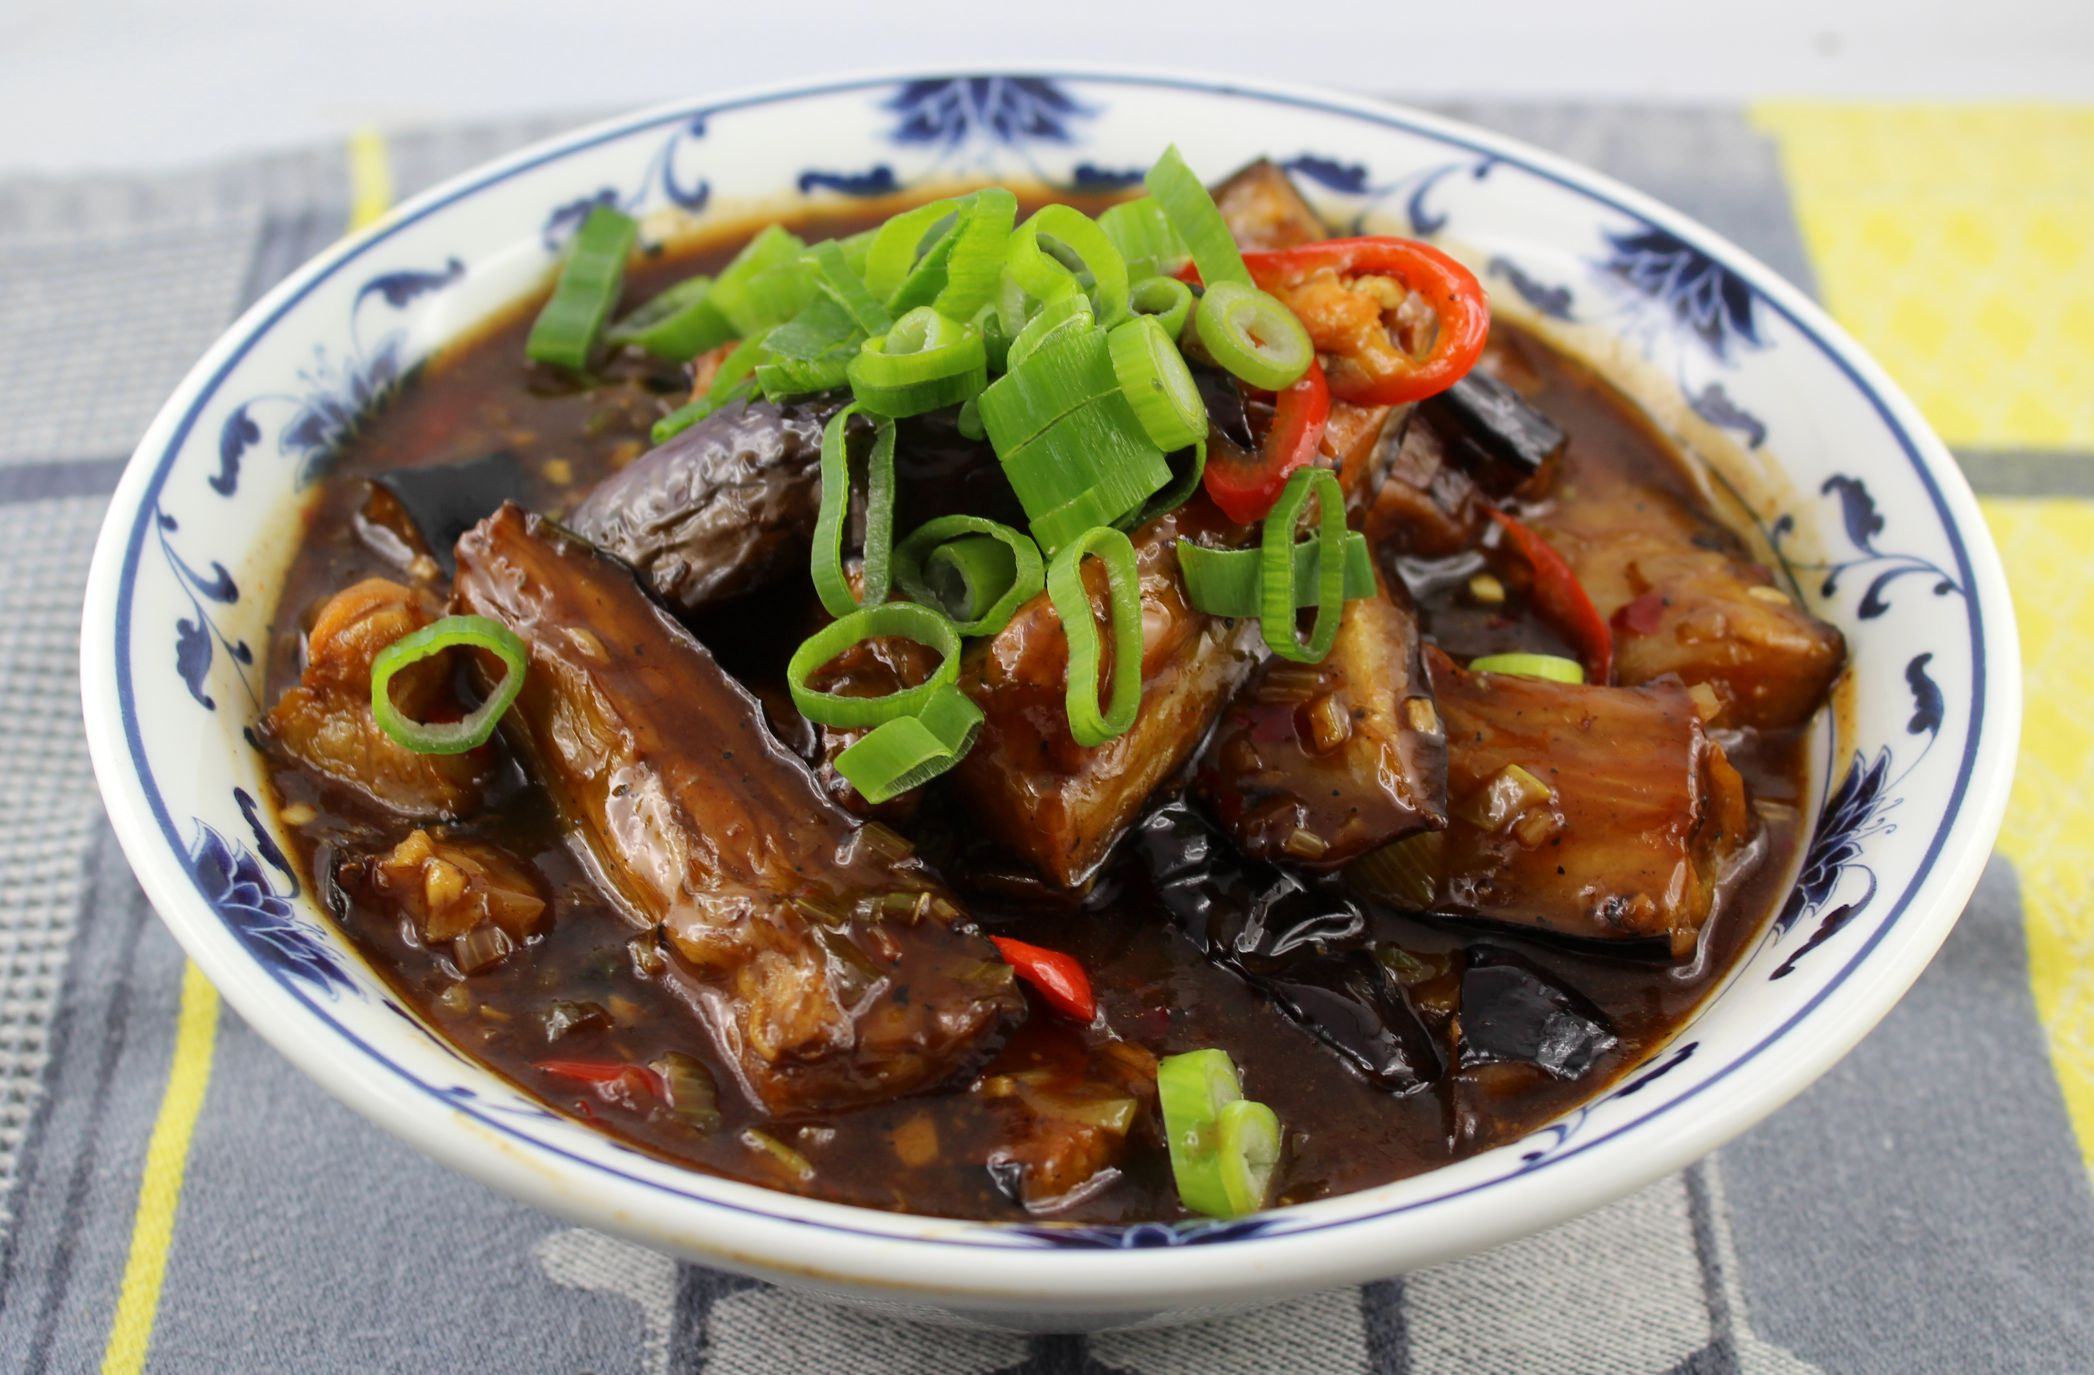 Aubergine im Sichuan Style - The Food Accomplice